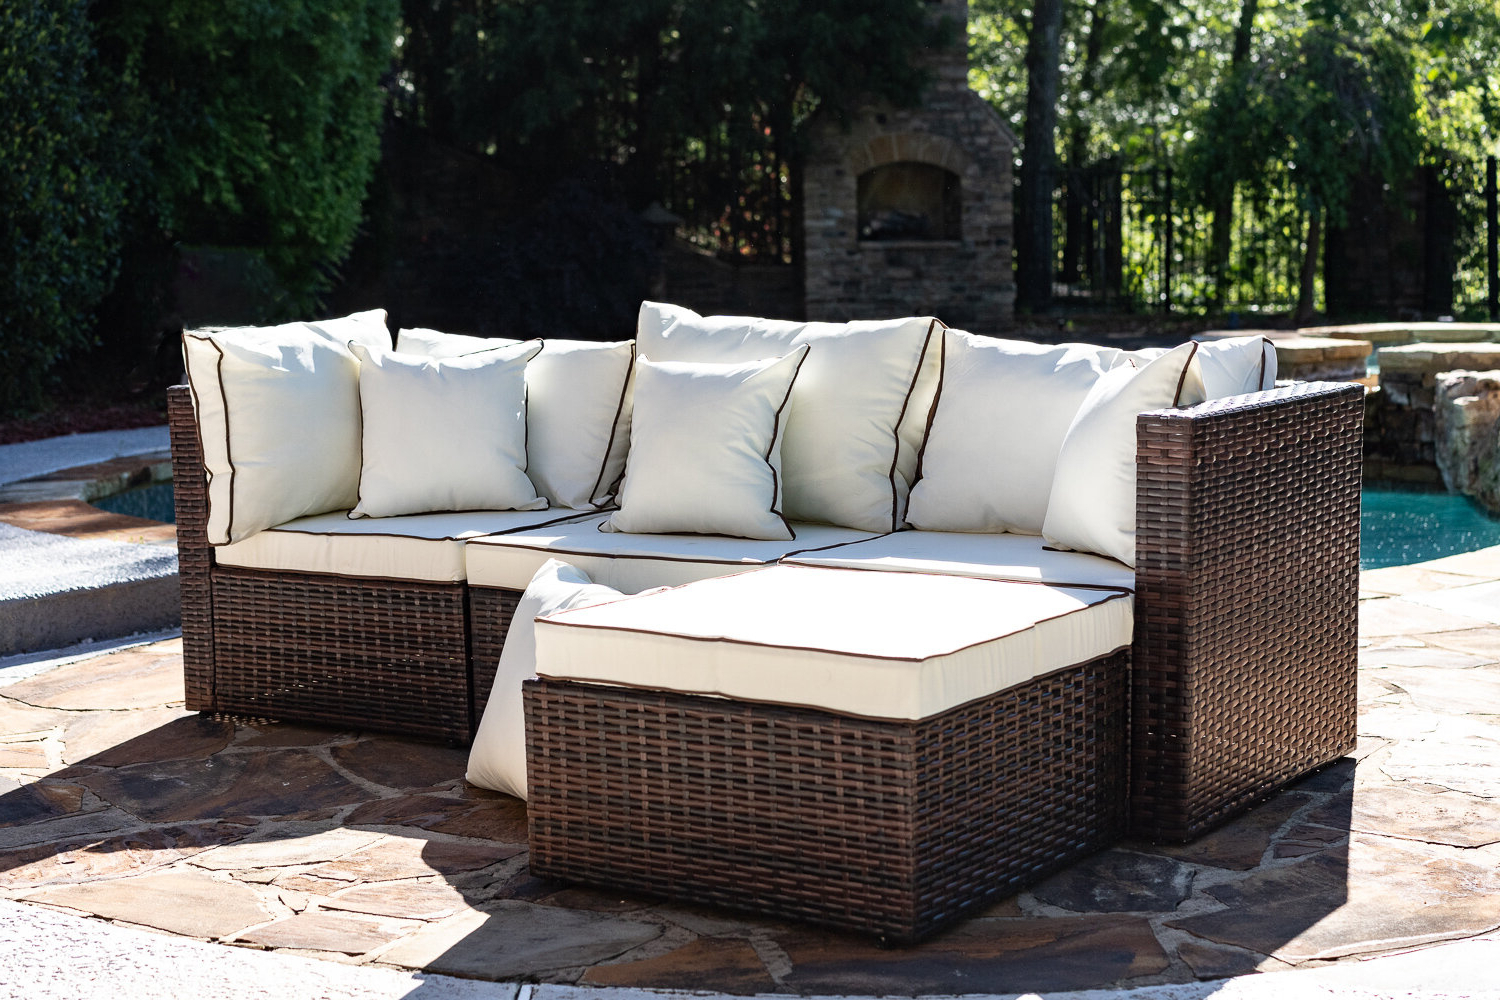 Nolen Patio Sectionals With Cushions Regarding Trendy Burruss Patio Sectional With Cushions (View 12 of 20)